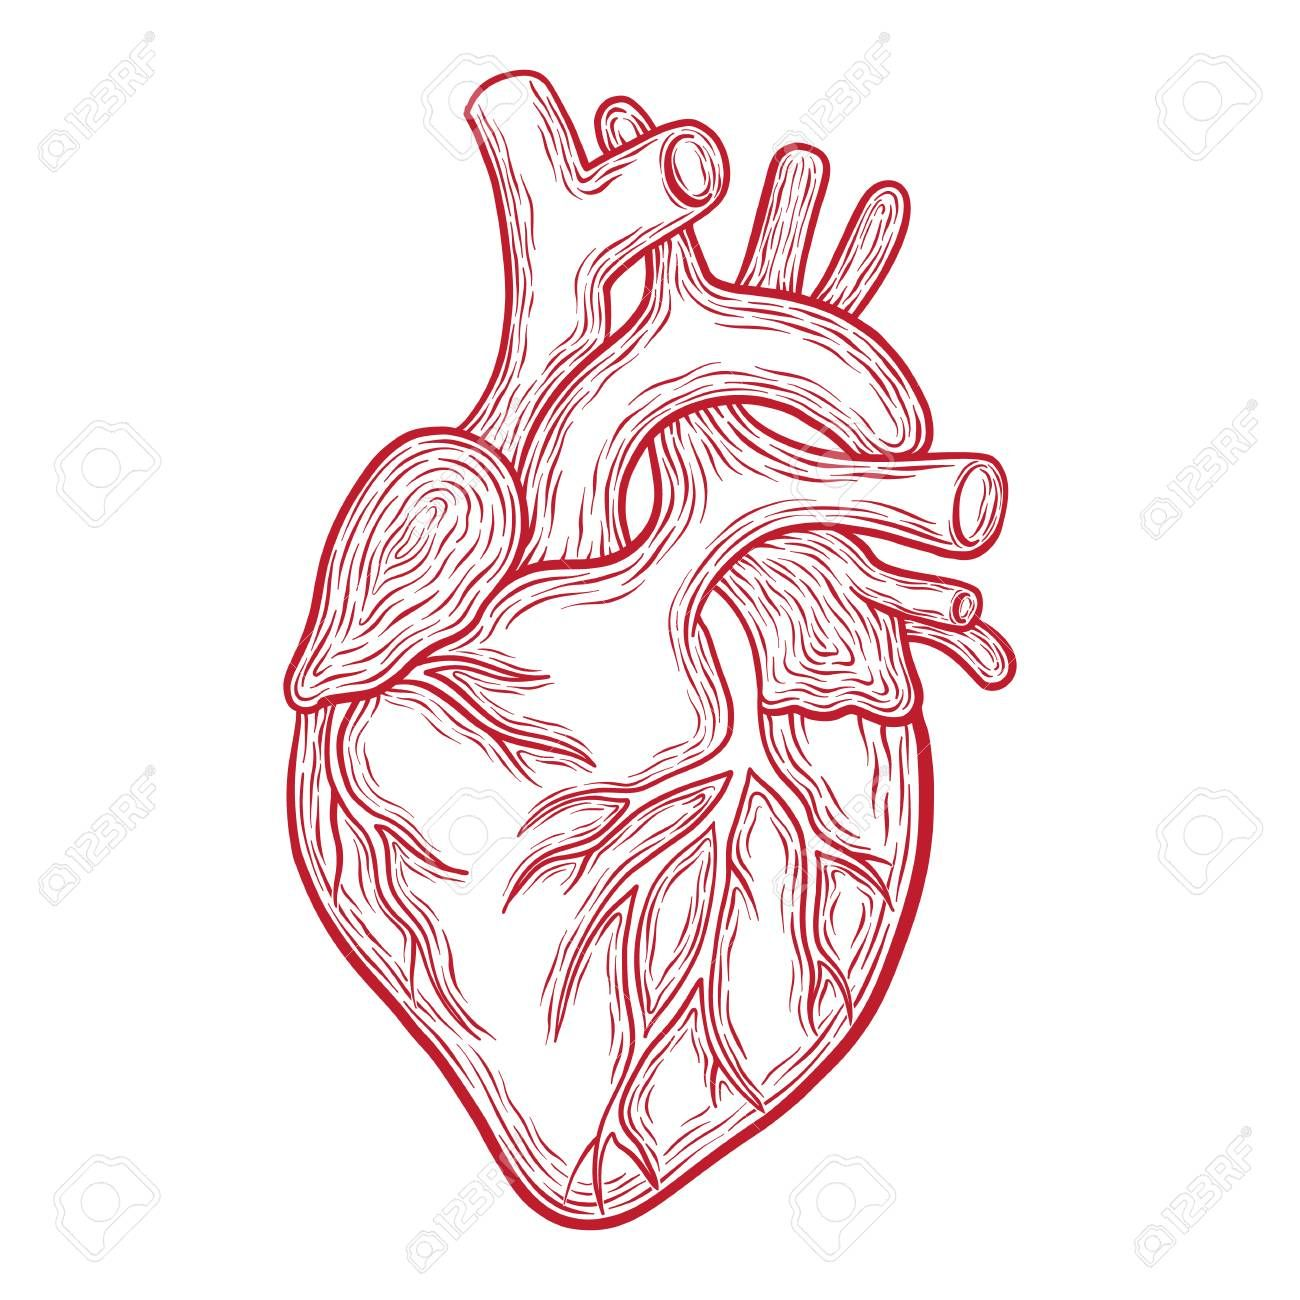 Stock Vector Human heart drawing, Hand drawn vector, How